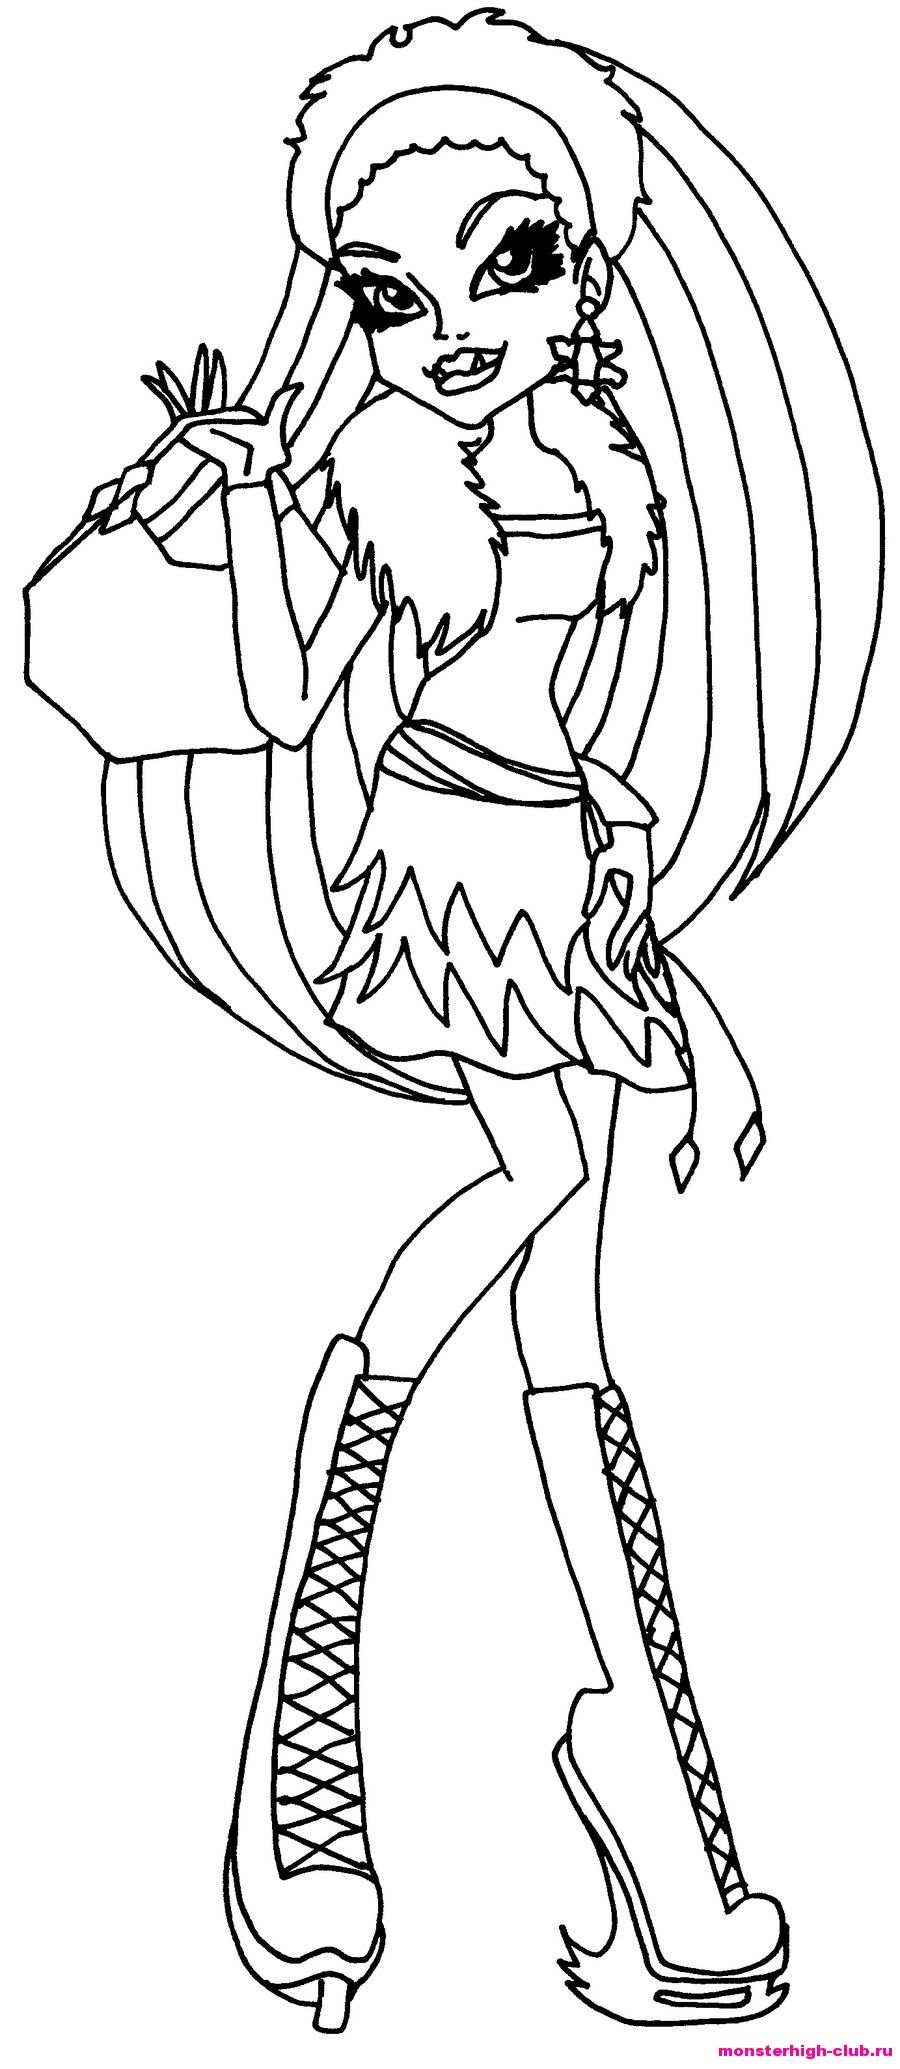 Monster High Frankie Stein Coloring Page